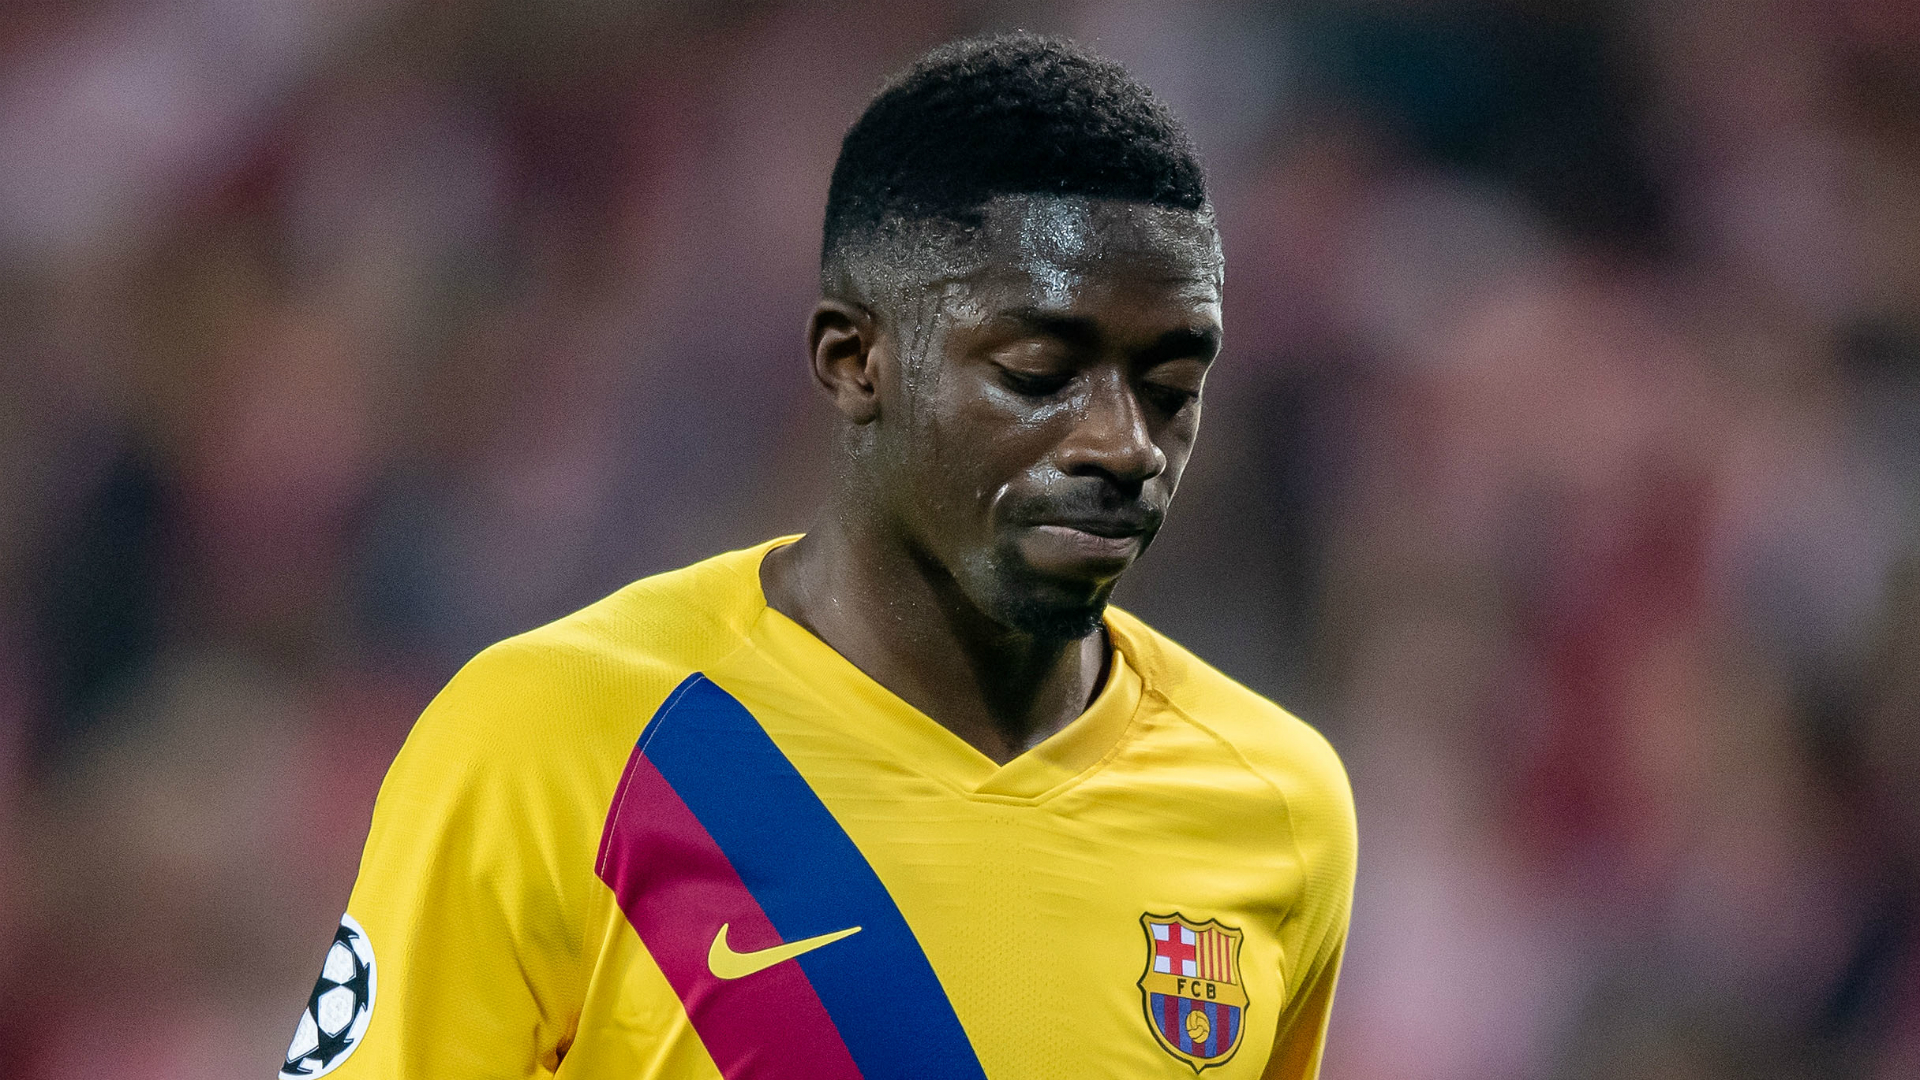 Dembele left out of Barcelona squad for trip to Levante